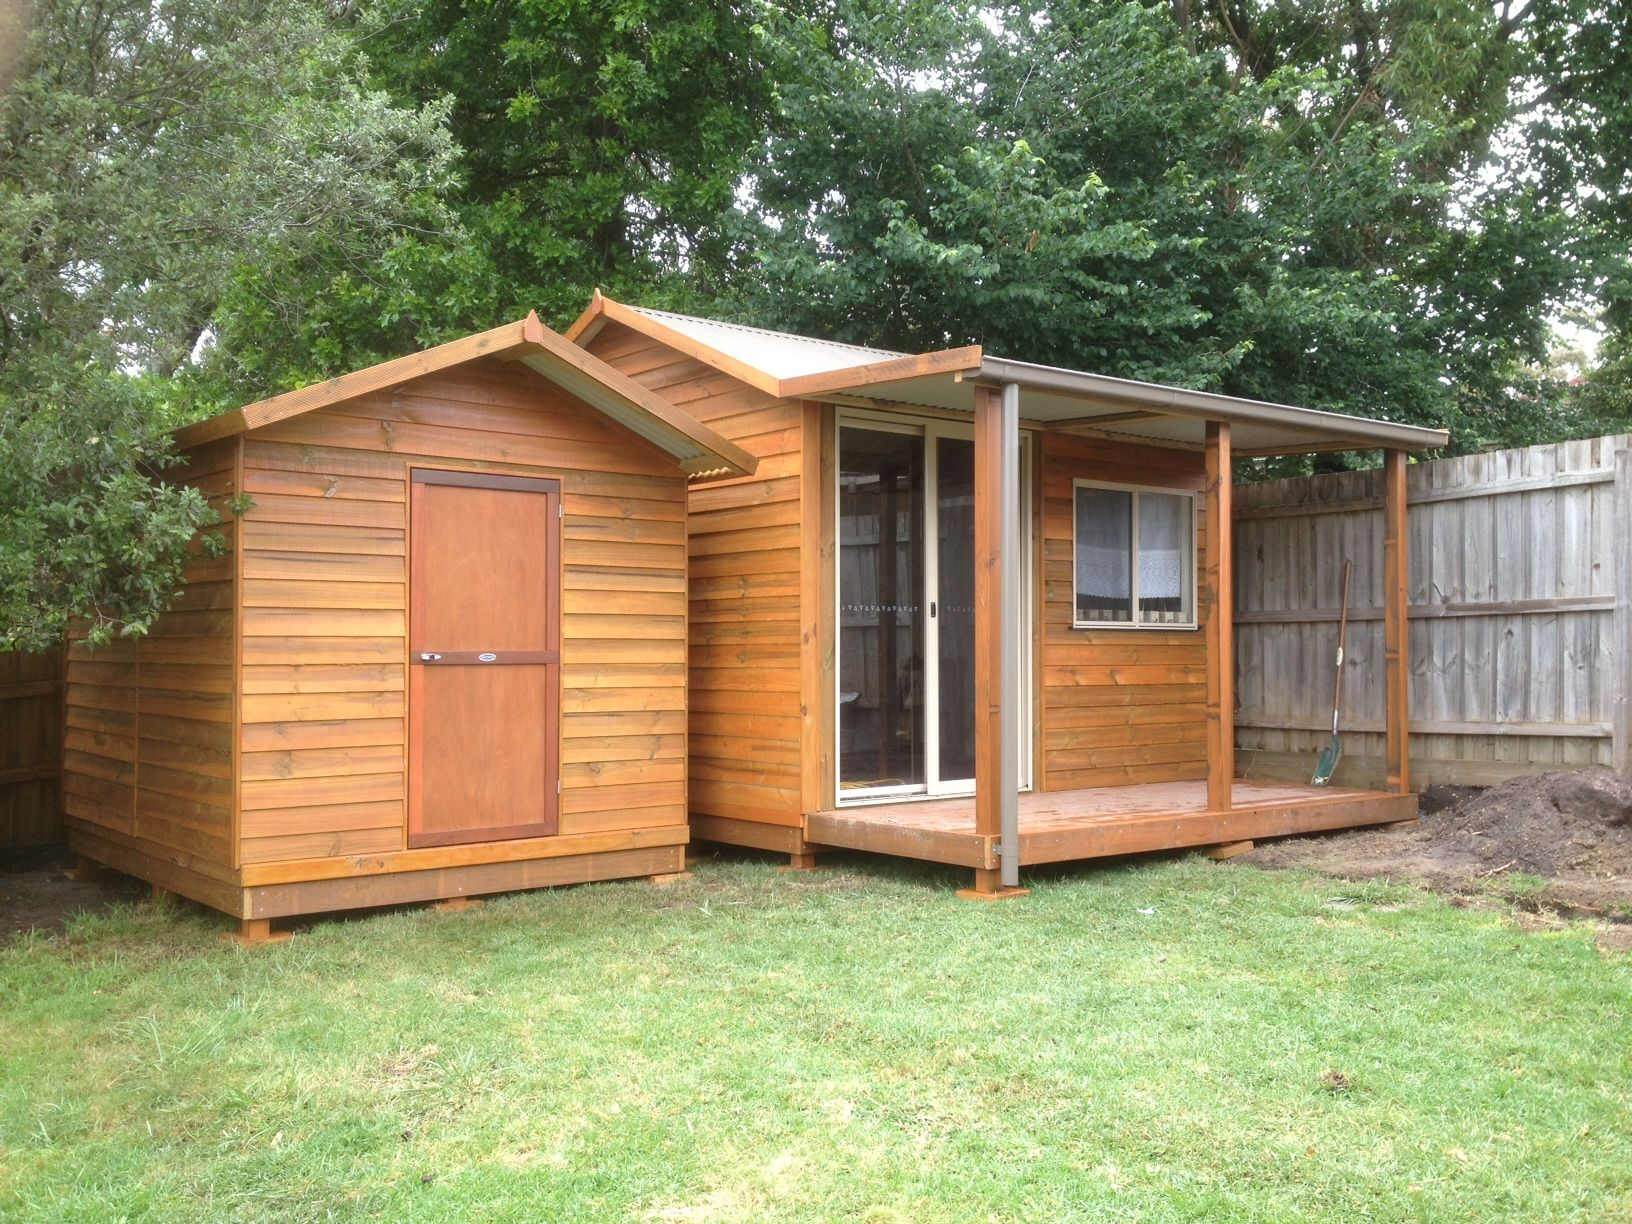 weve got a shed for storage and a studio for